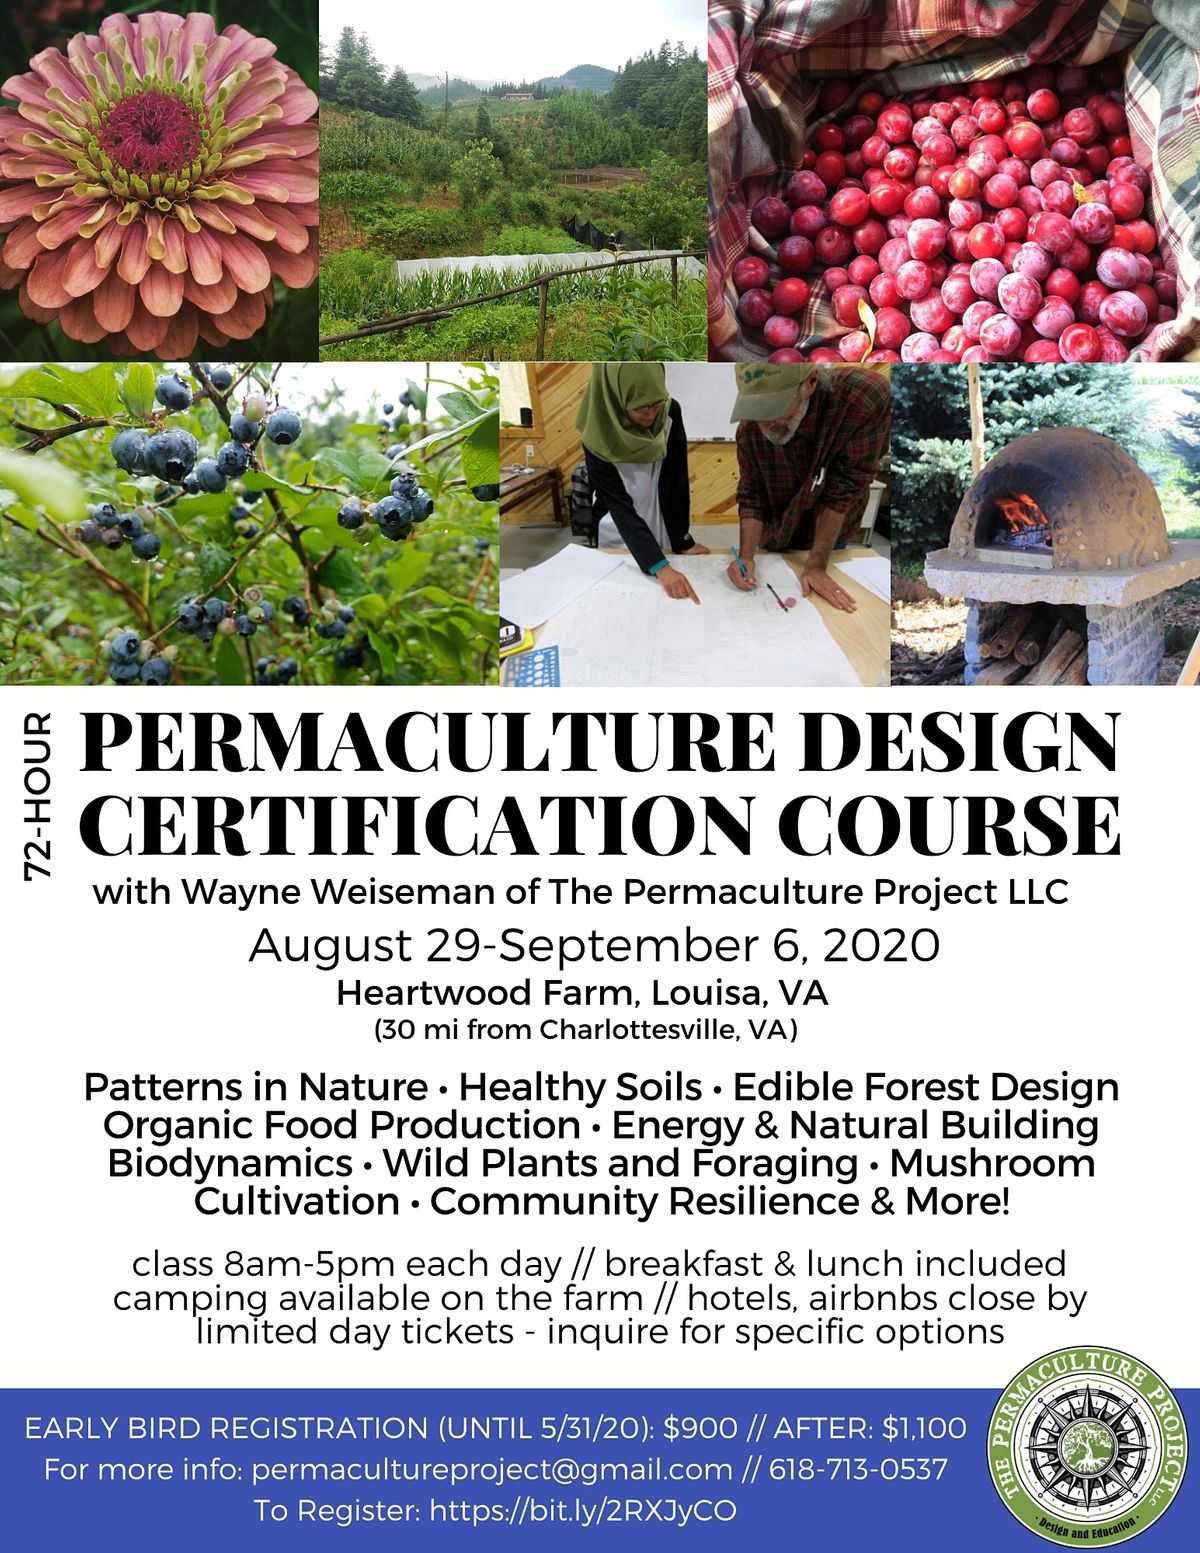 72-Hour Permaculture Design Certification Course with Wayne Weiseman